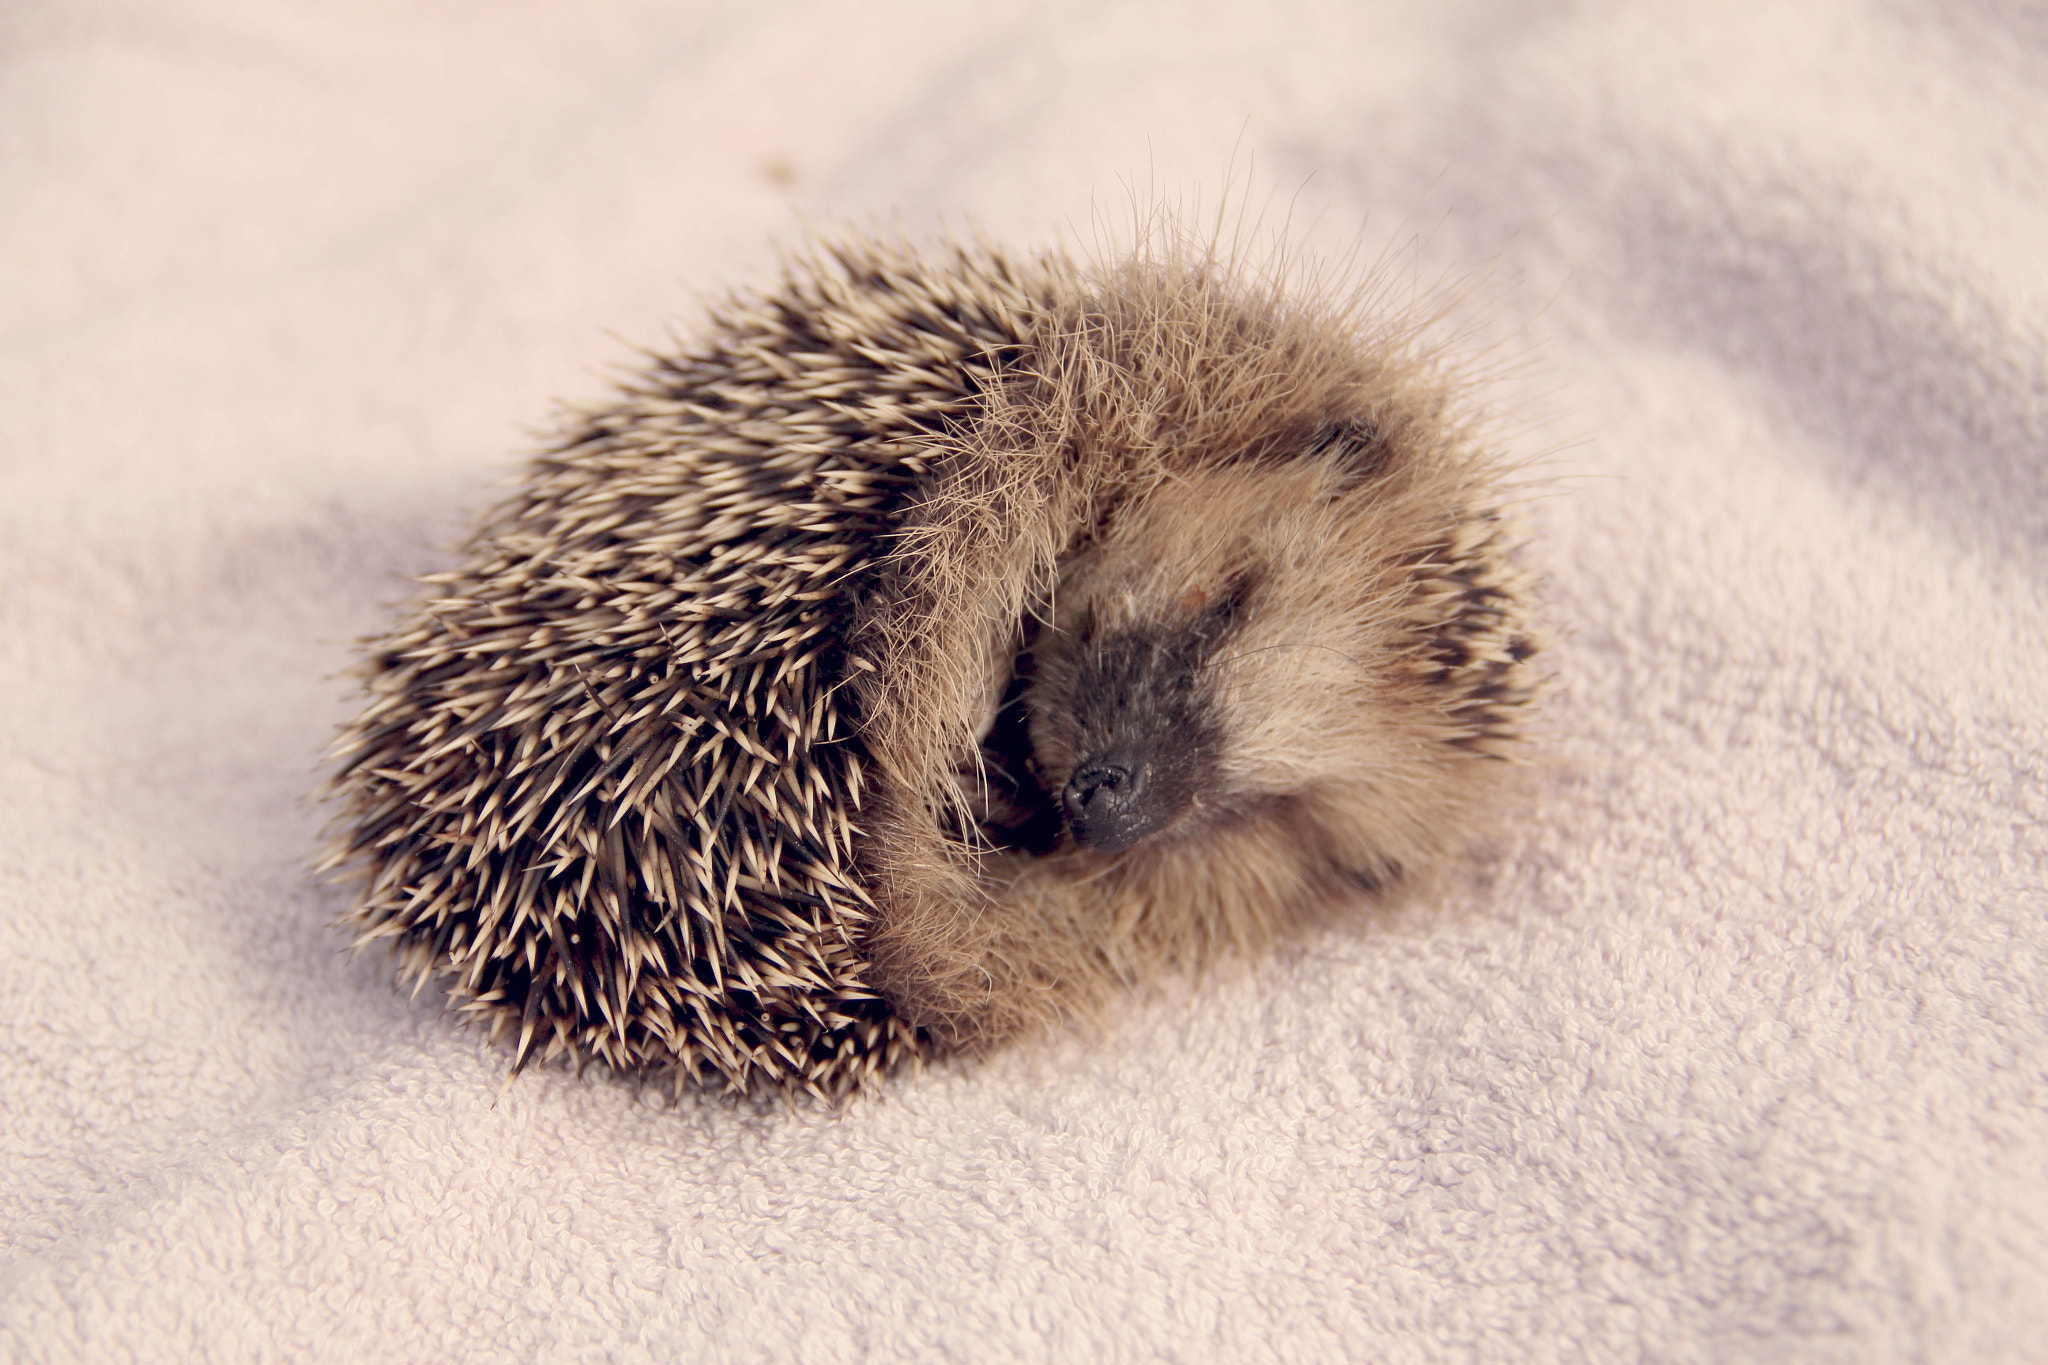 Photograph Little tired hedgehog by Topea Gina on 500px